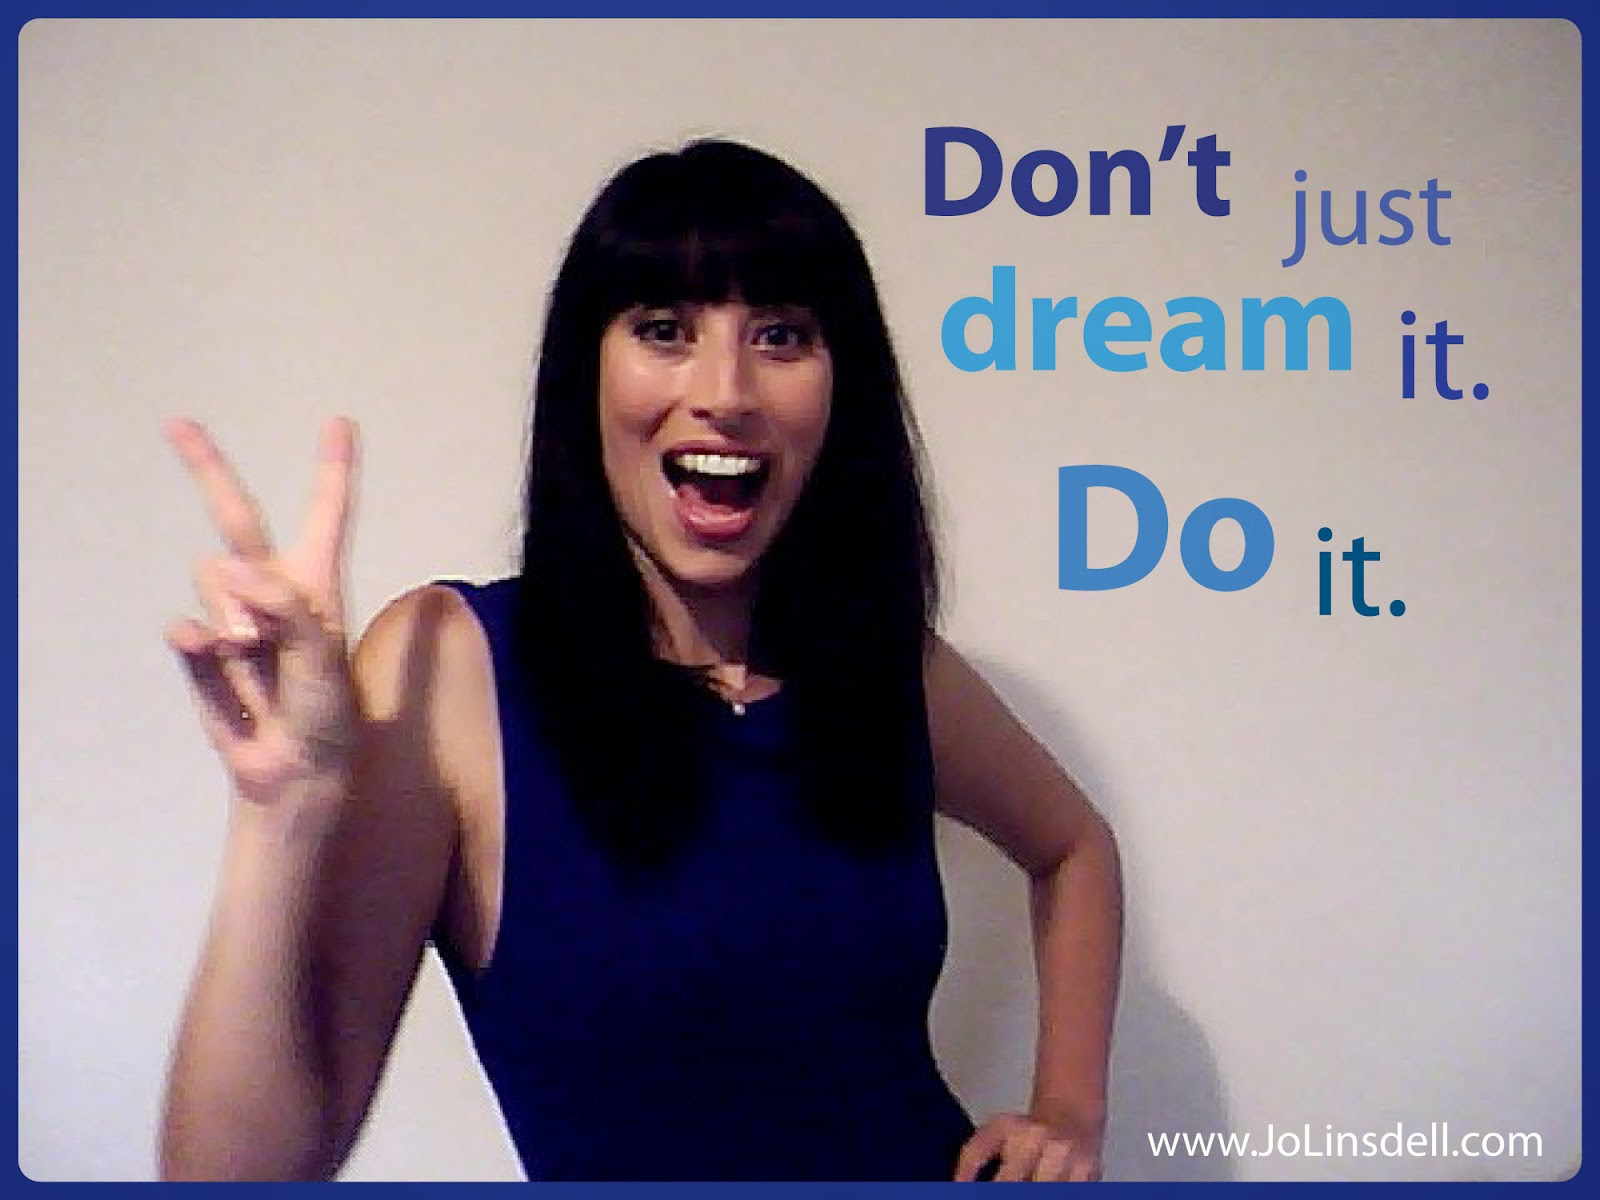 Jo Linsdell, Don't just dream it. Do it.